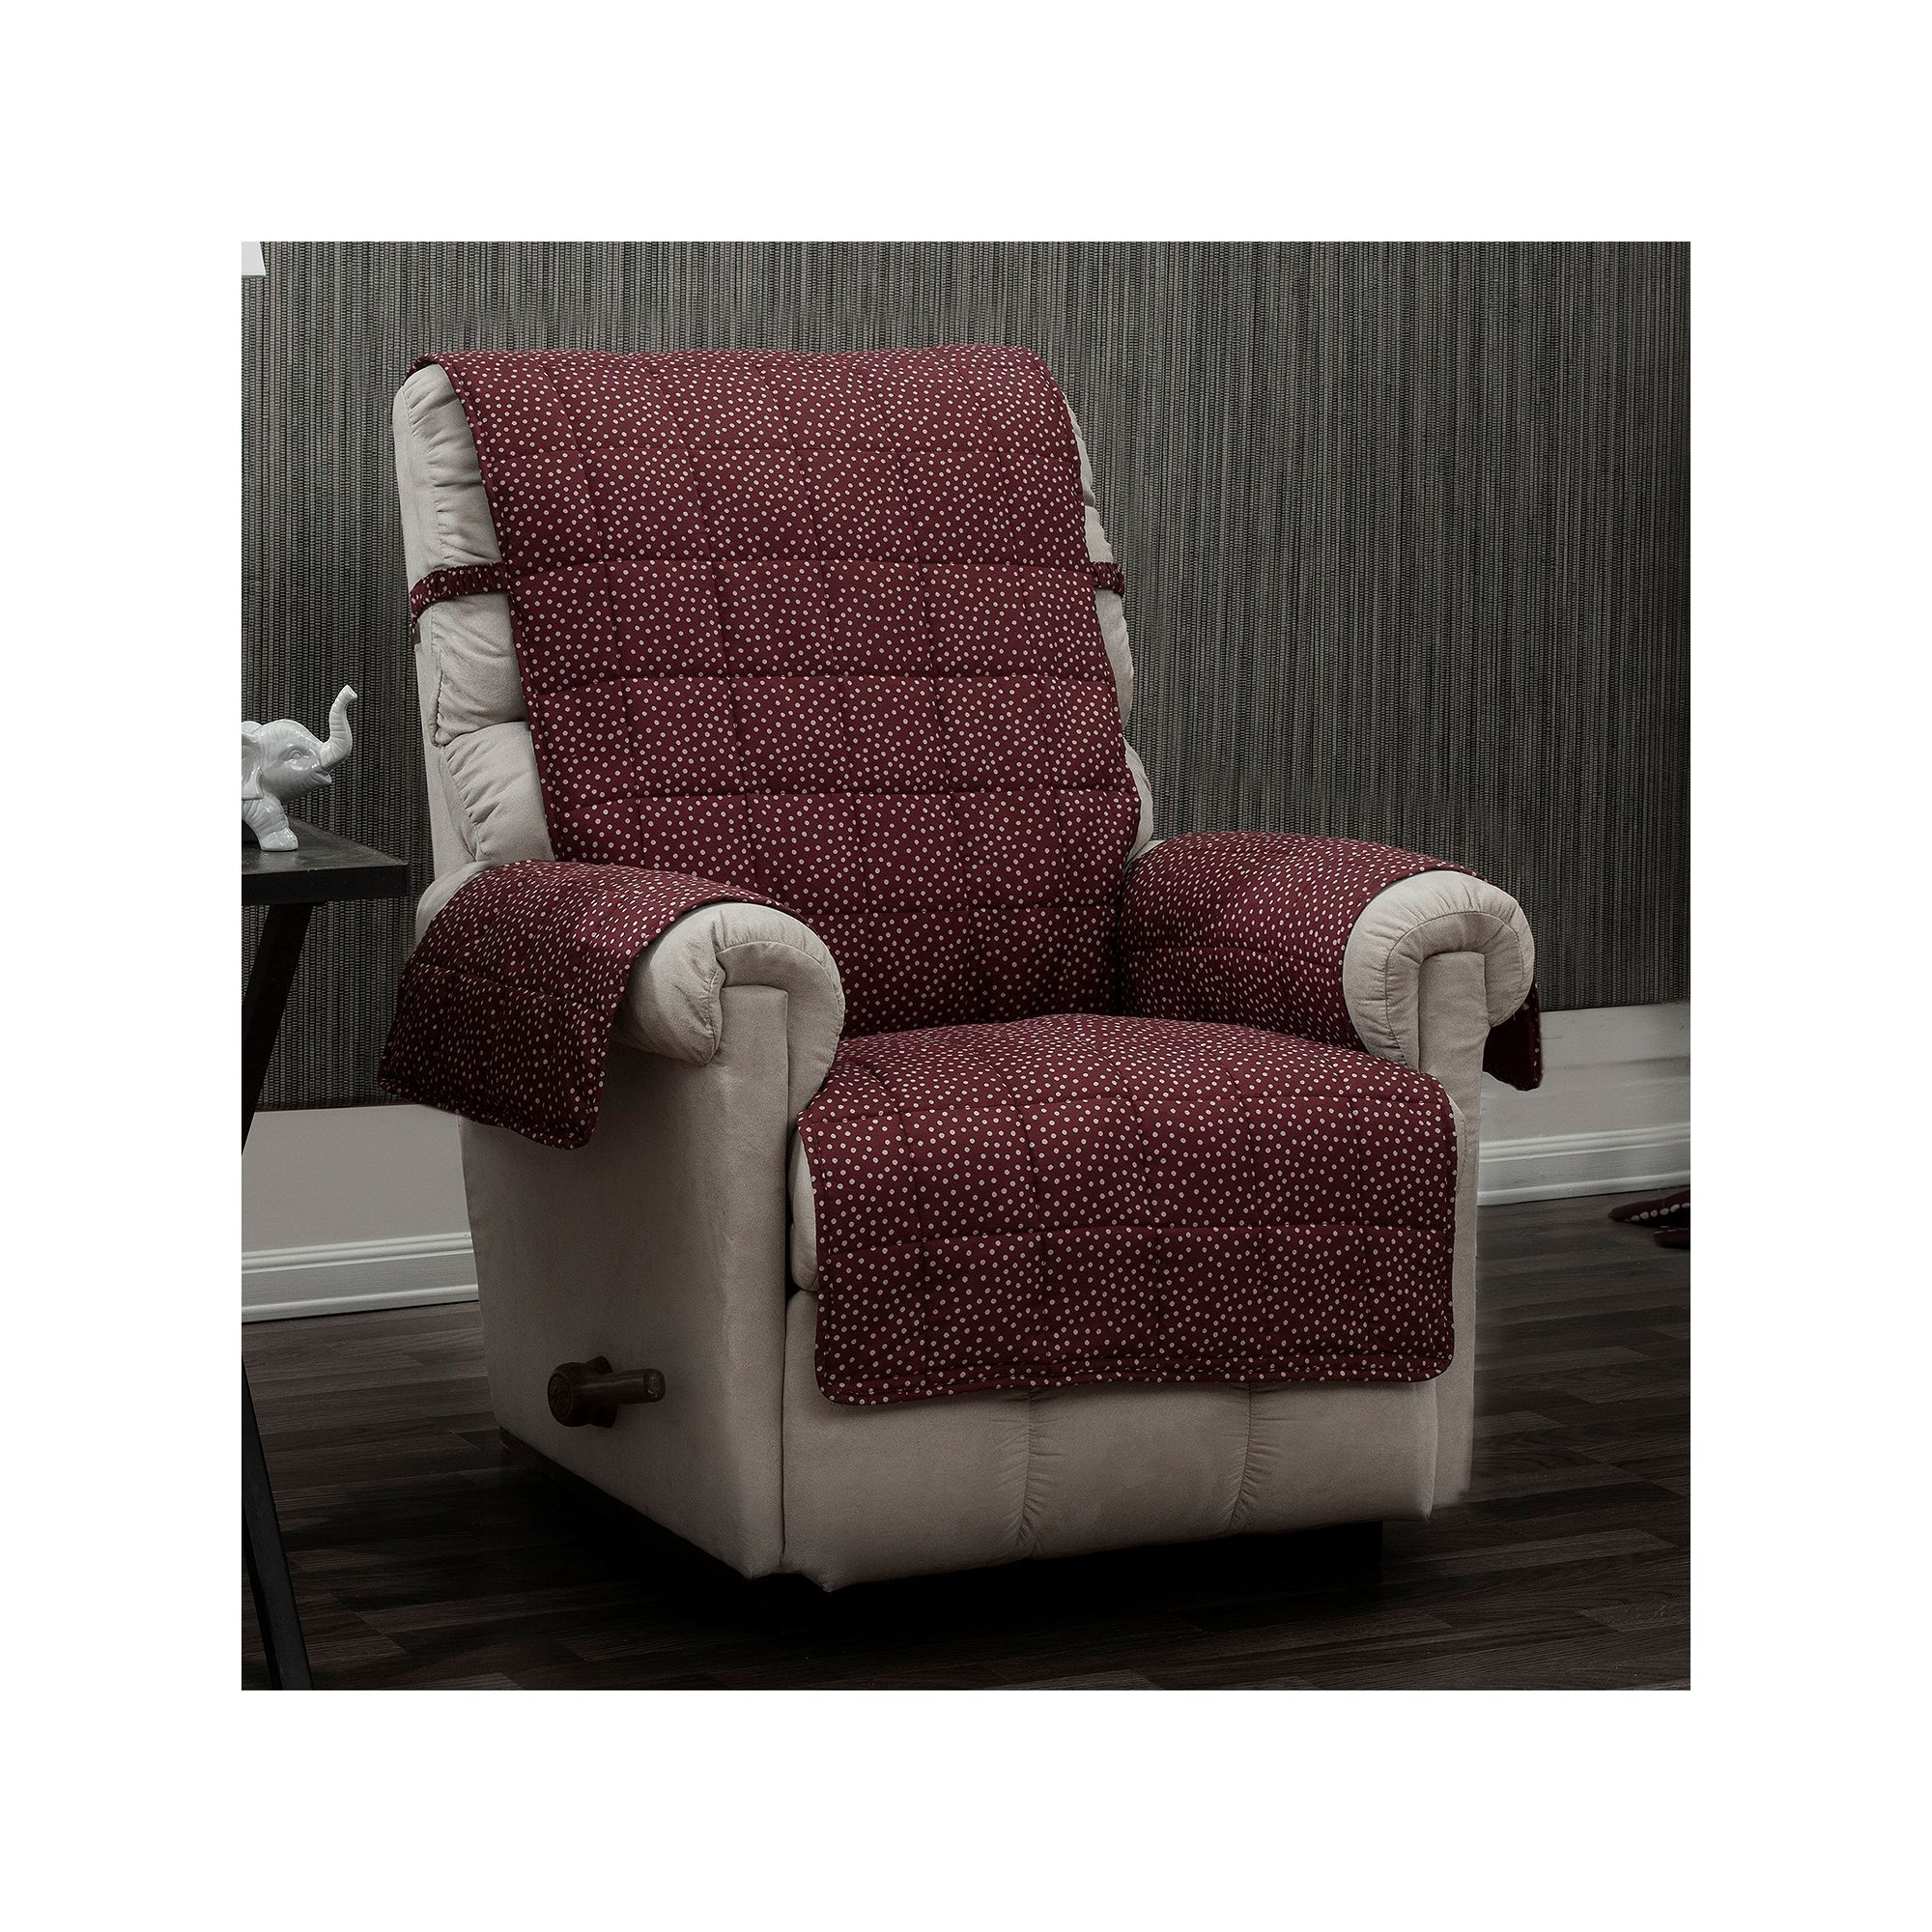 target recliners wingback chairs with separate recliner for boy slipcover lazy arms wooden footrest slipcovers cheap